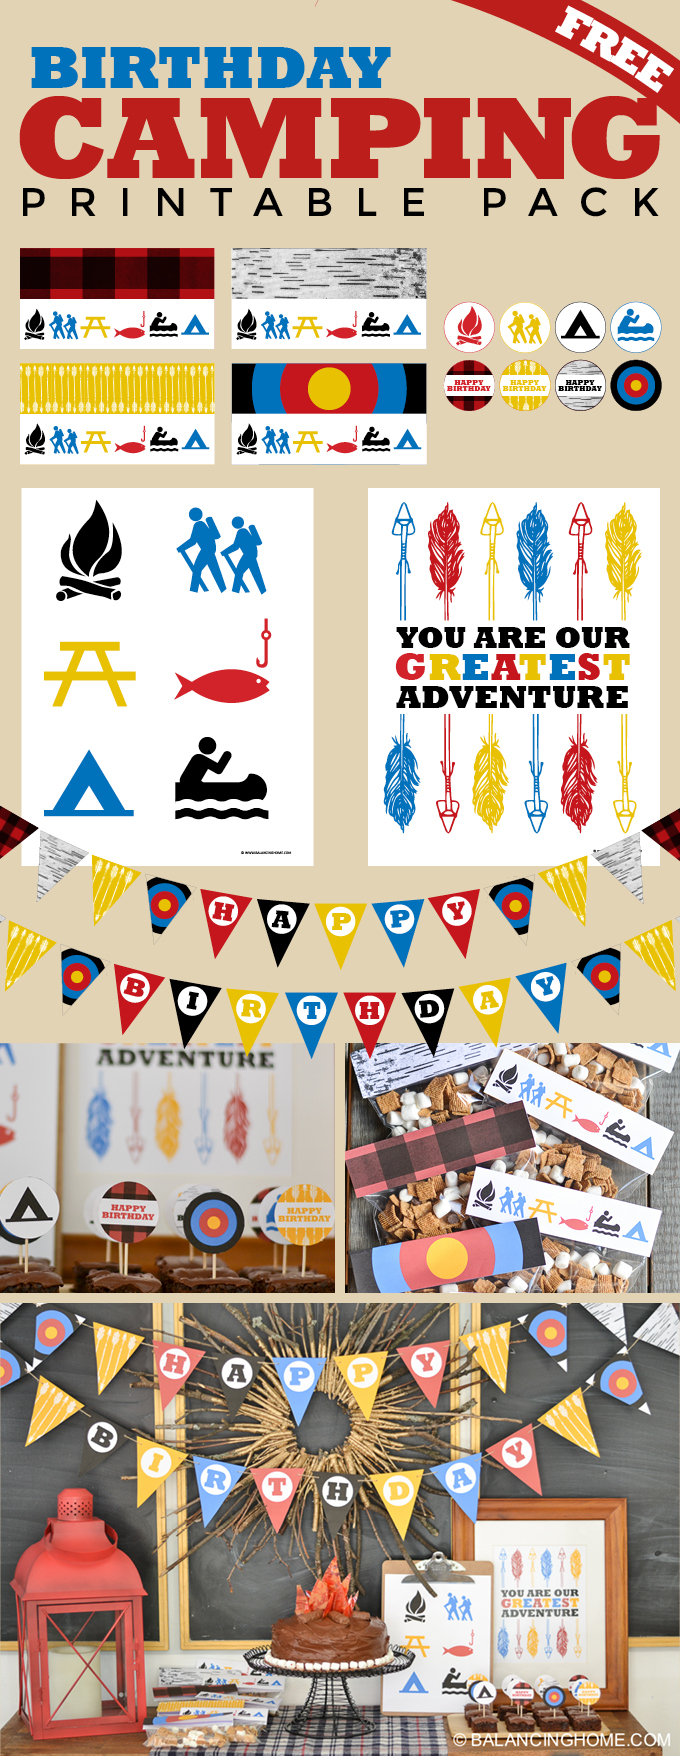 Camping Birthday Party Printables Balancing Home With